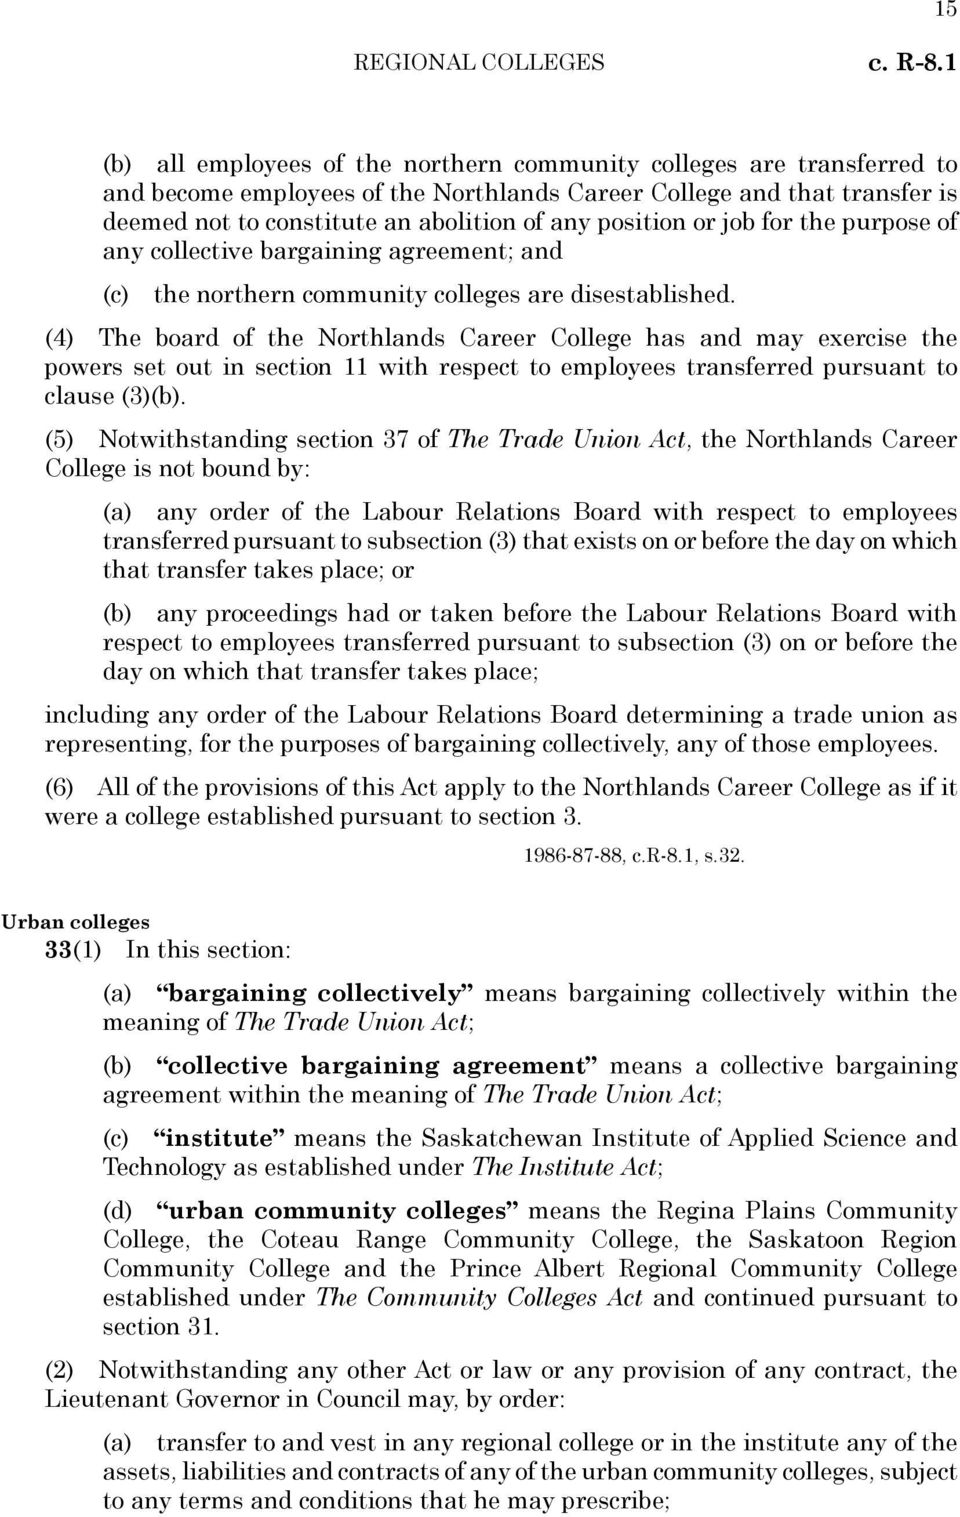 position or job for the purpose of any collective bargaining agreement; and (c) the northern community colleges are disestablished.